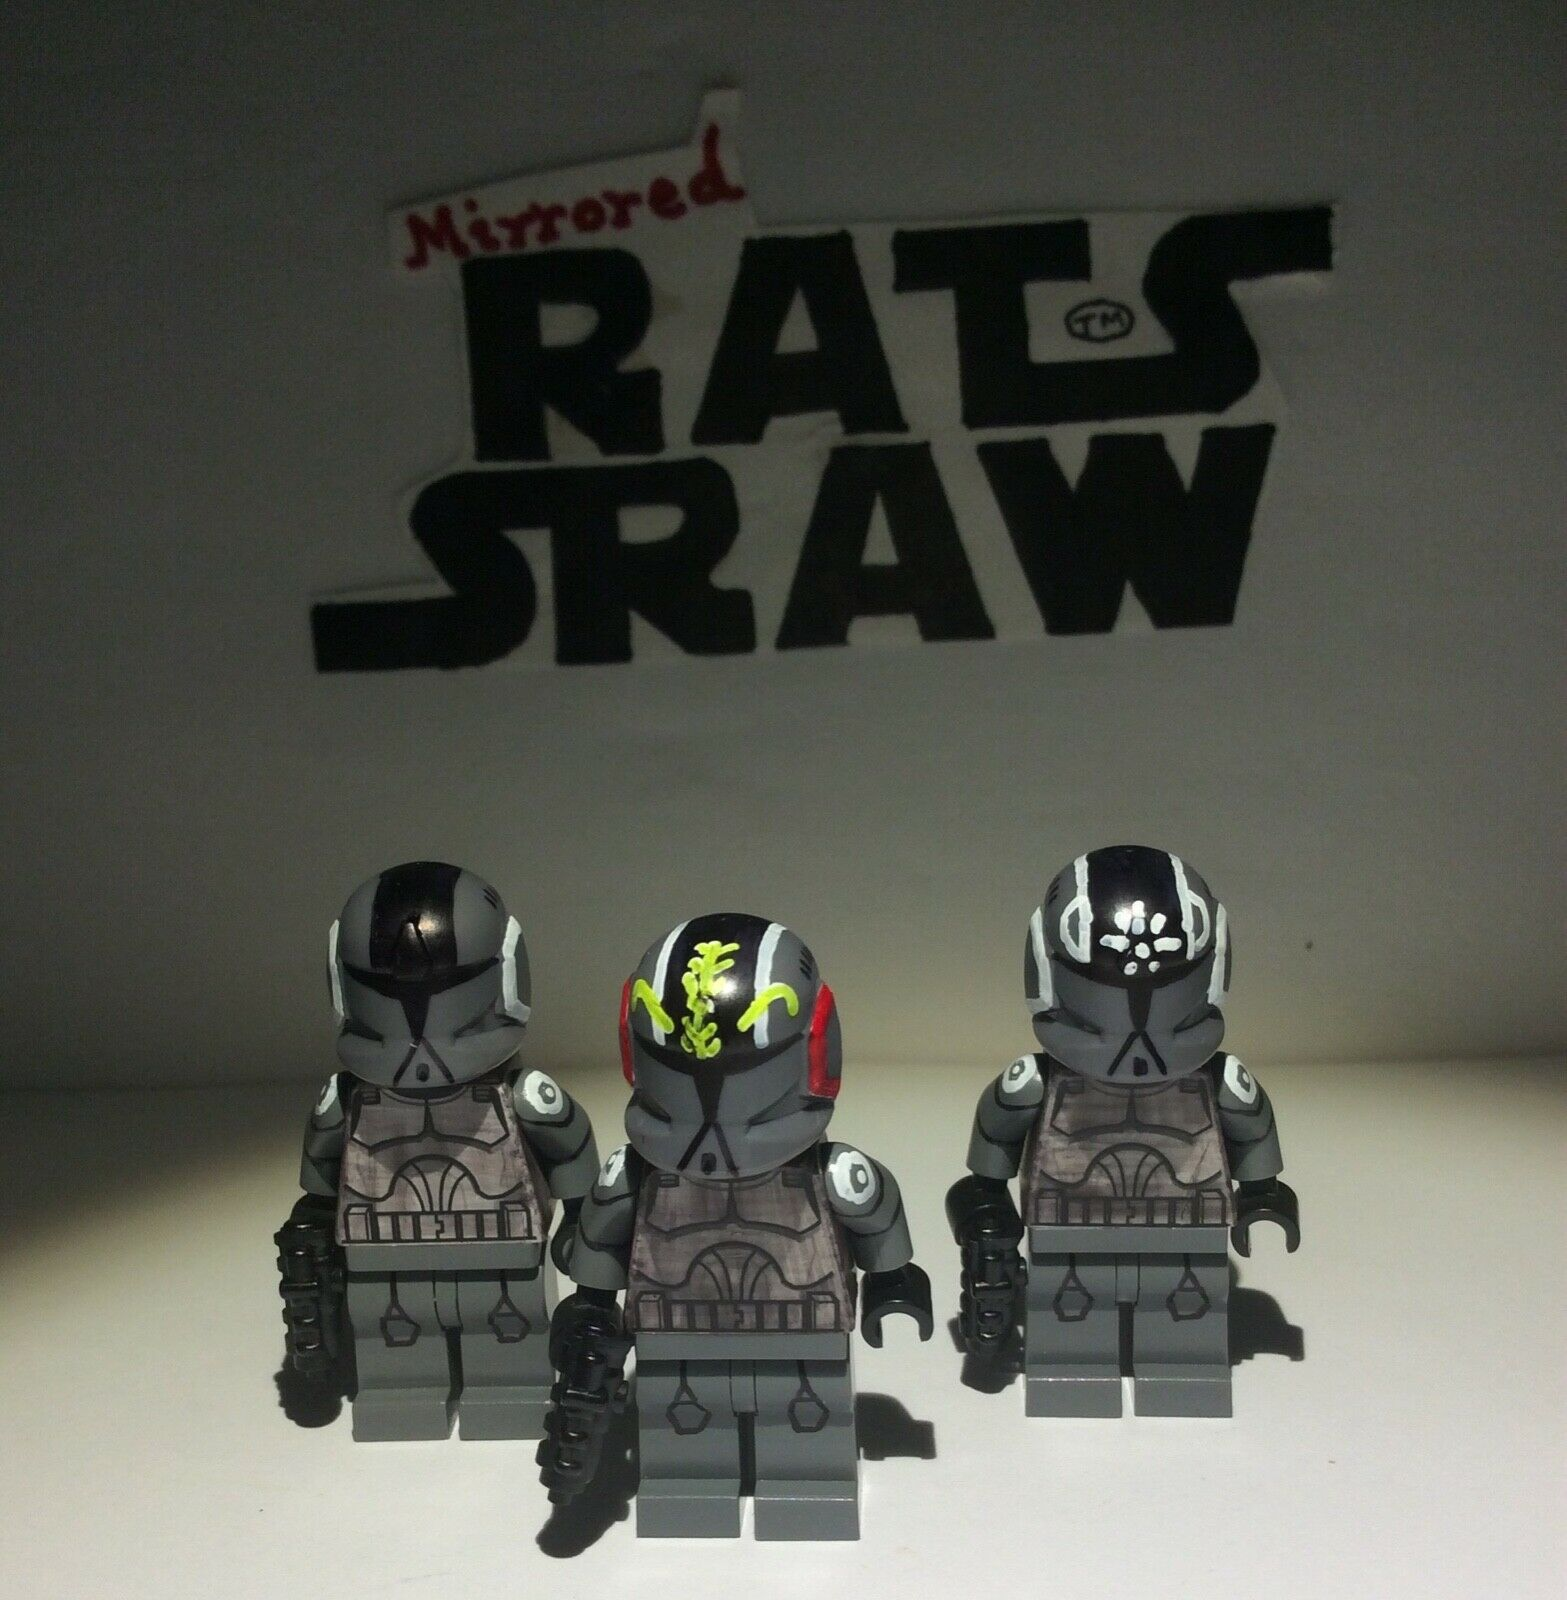 Lego Star Wars minifigures - Clone Custom Troopers - Stealth Pilot set SPECIAL